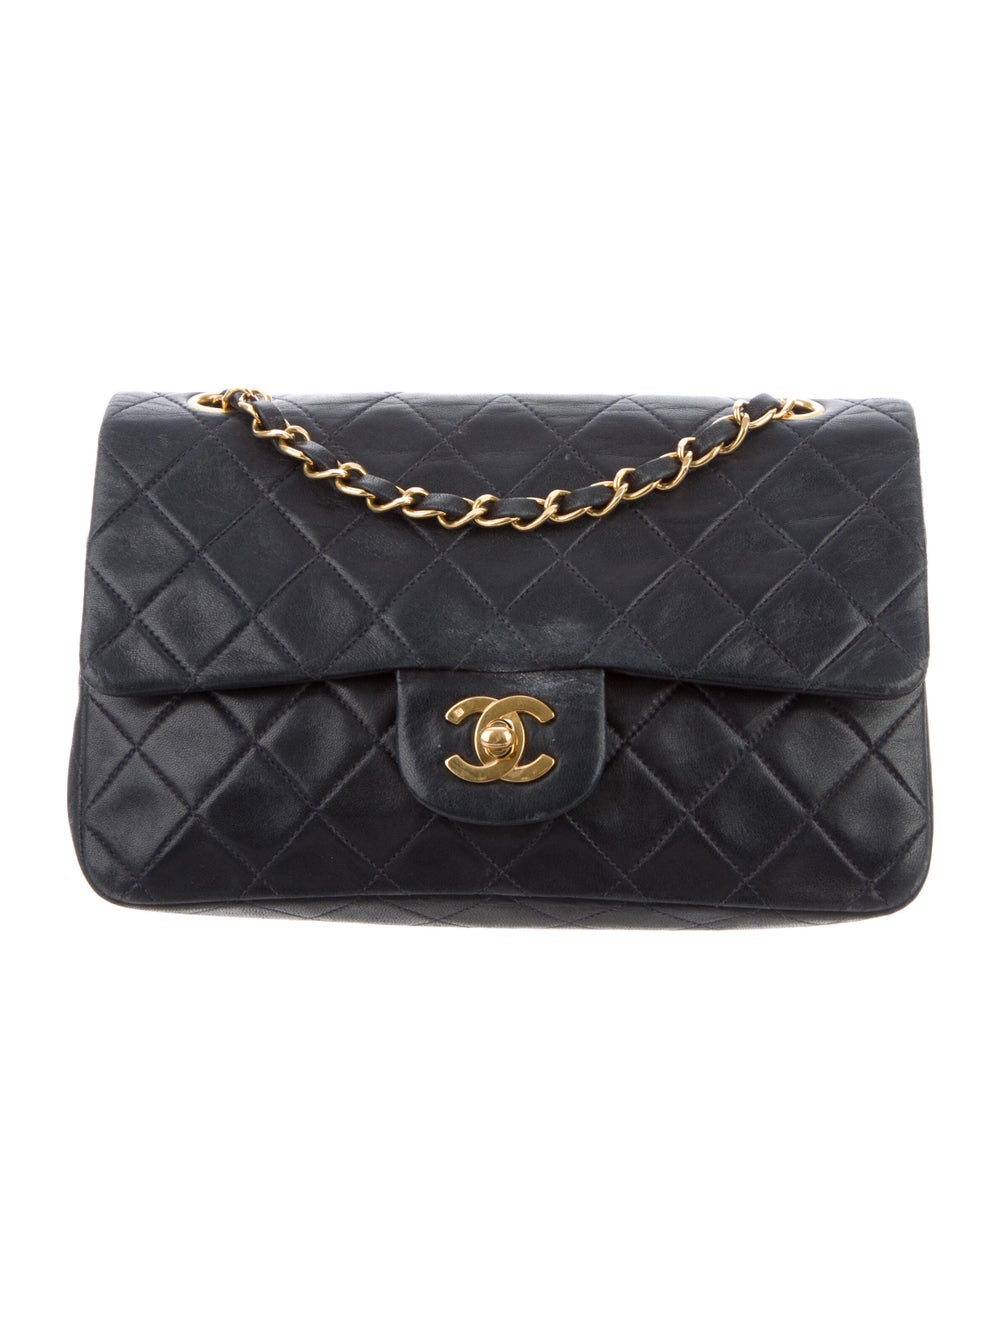 Chanel Small Classic Flap Bag Blue - image 1